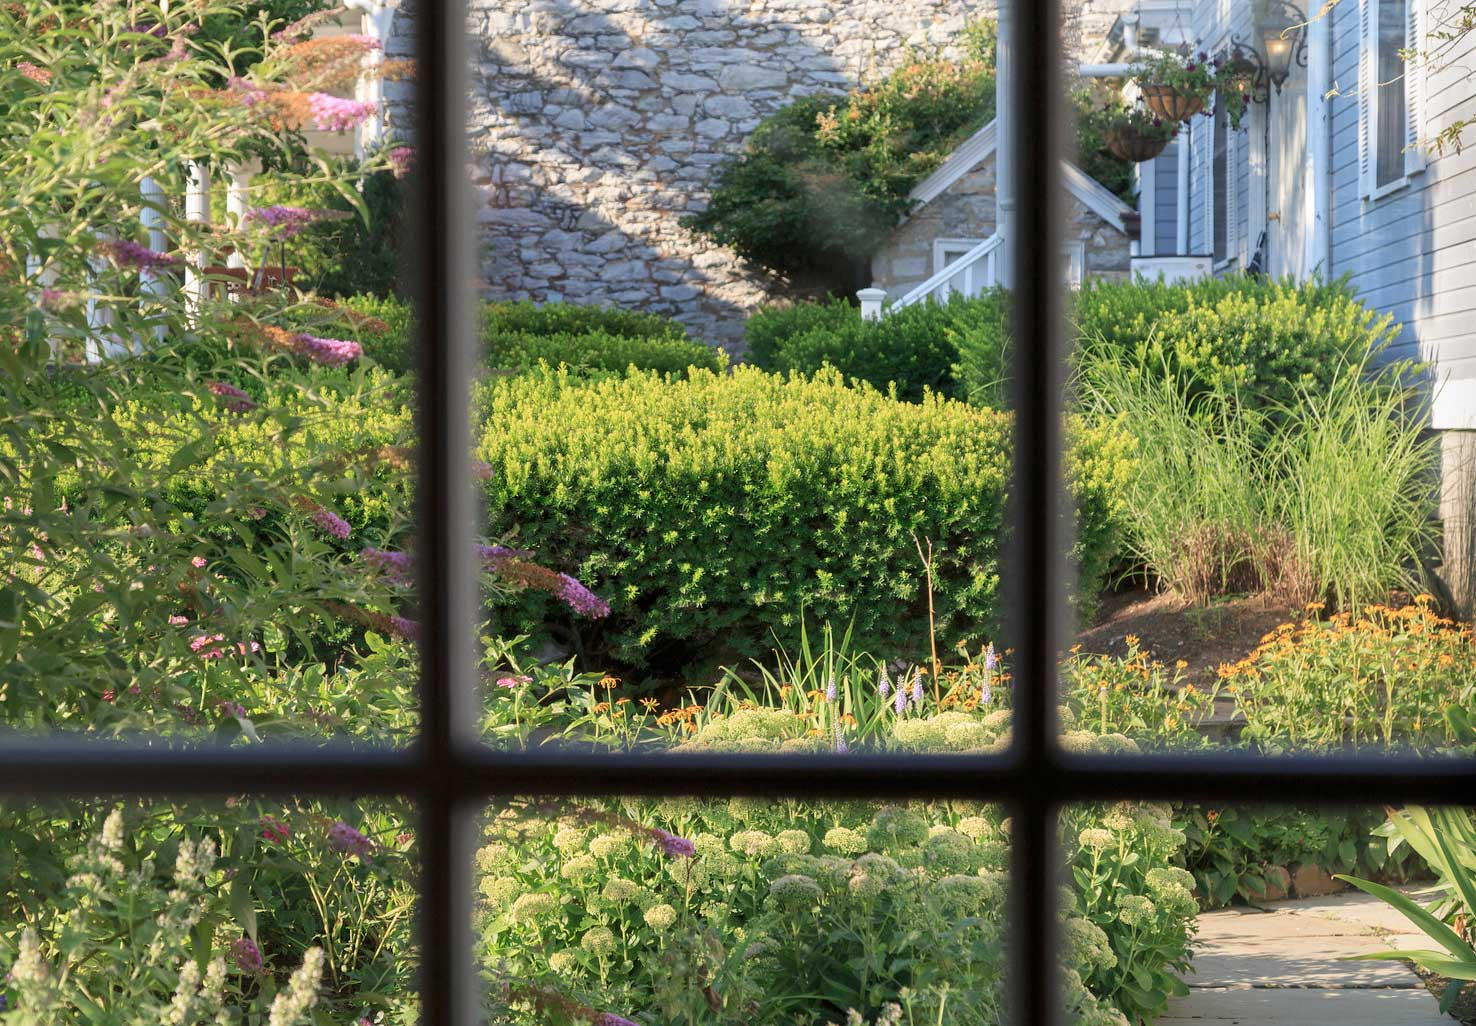 View of a garden out of a paned window